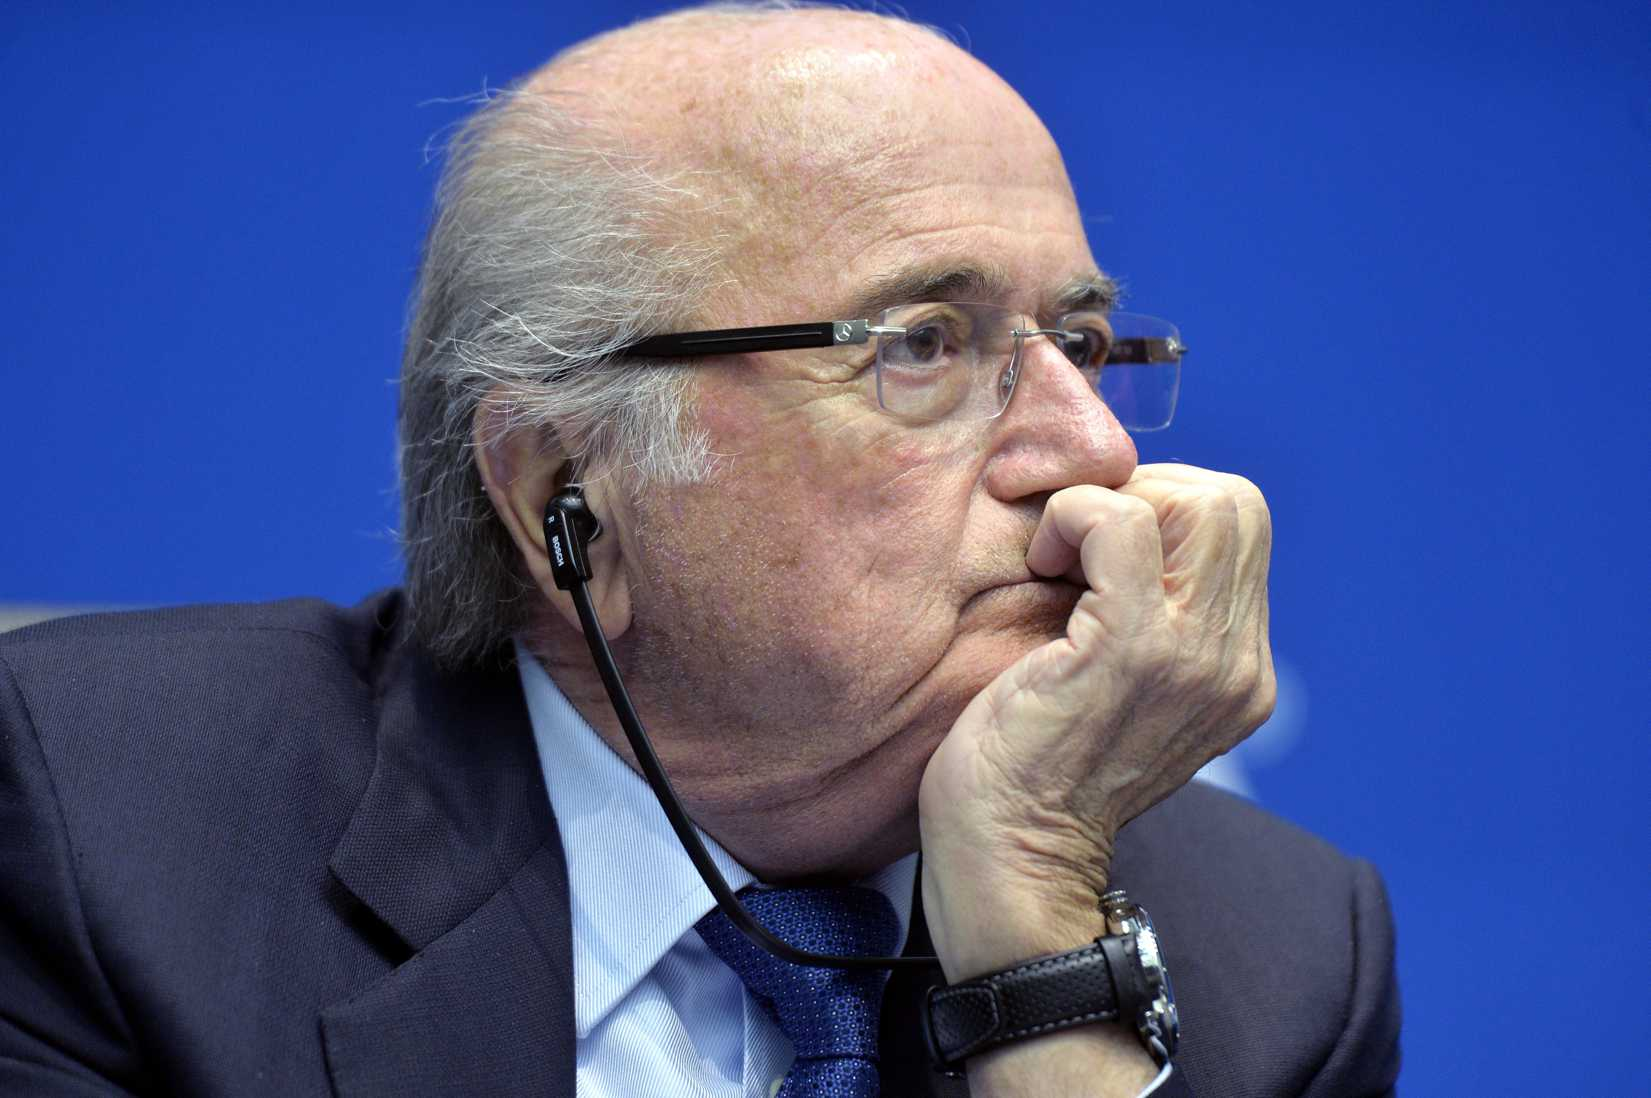 FIFA president Sepp Blatter attends a press conference at the conclusion of the meeting of the FIFA Executive Committee at the Home of FIFA in Zurich on Friday, March 21, 2014.